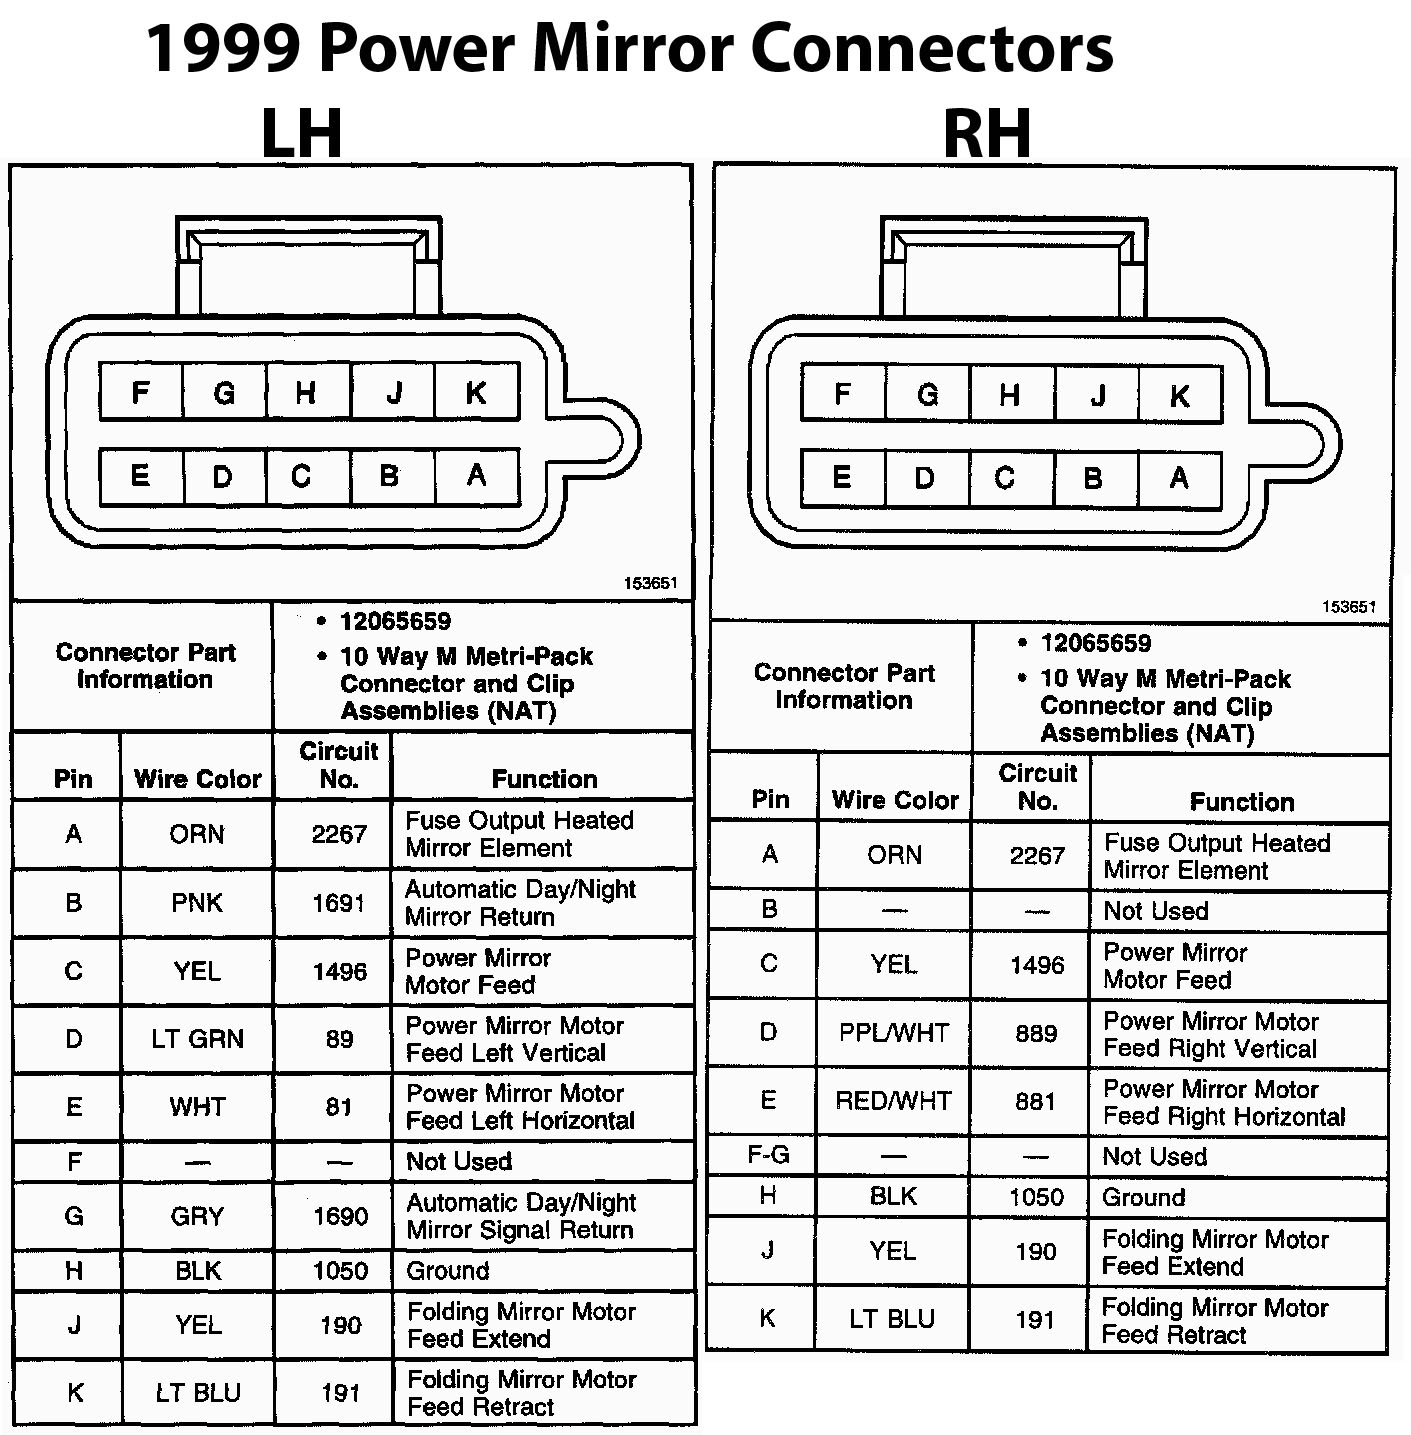 2005 Chevy Equinox Radio Wiring Diagram Pdf 2005 Chevy